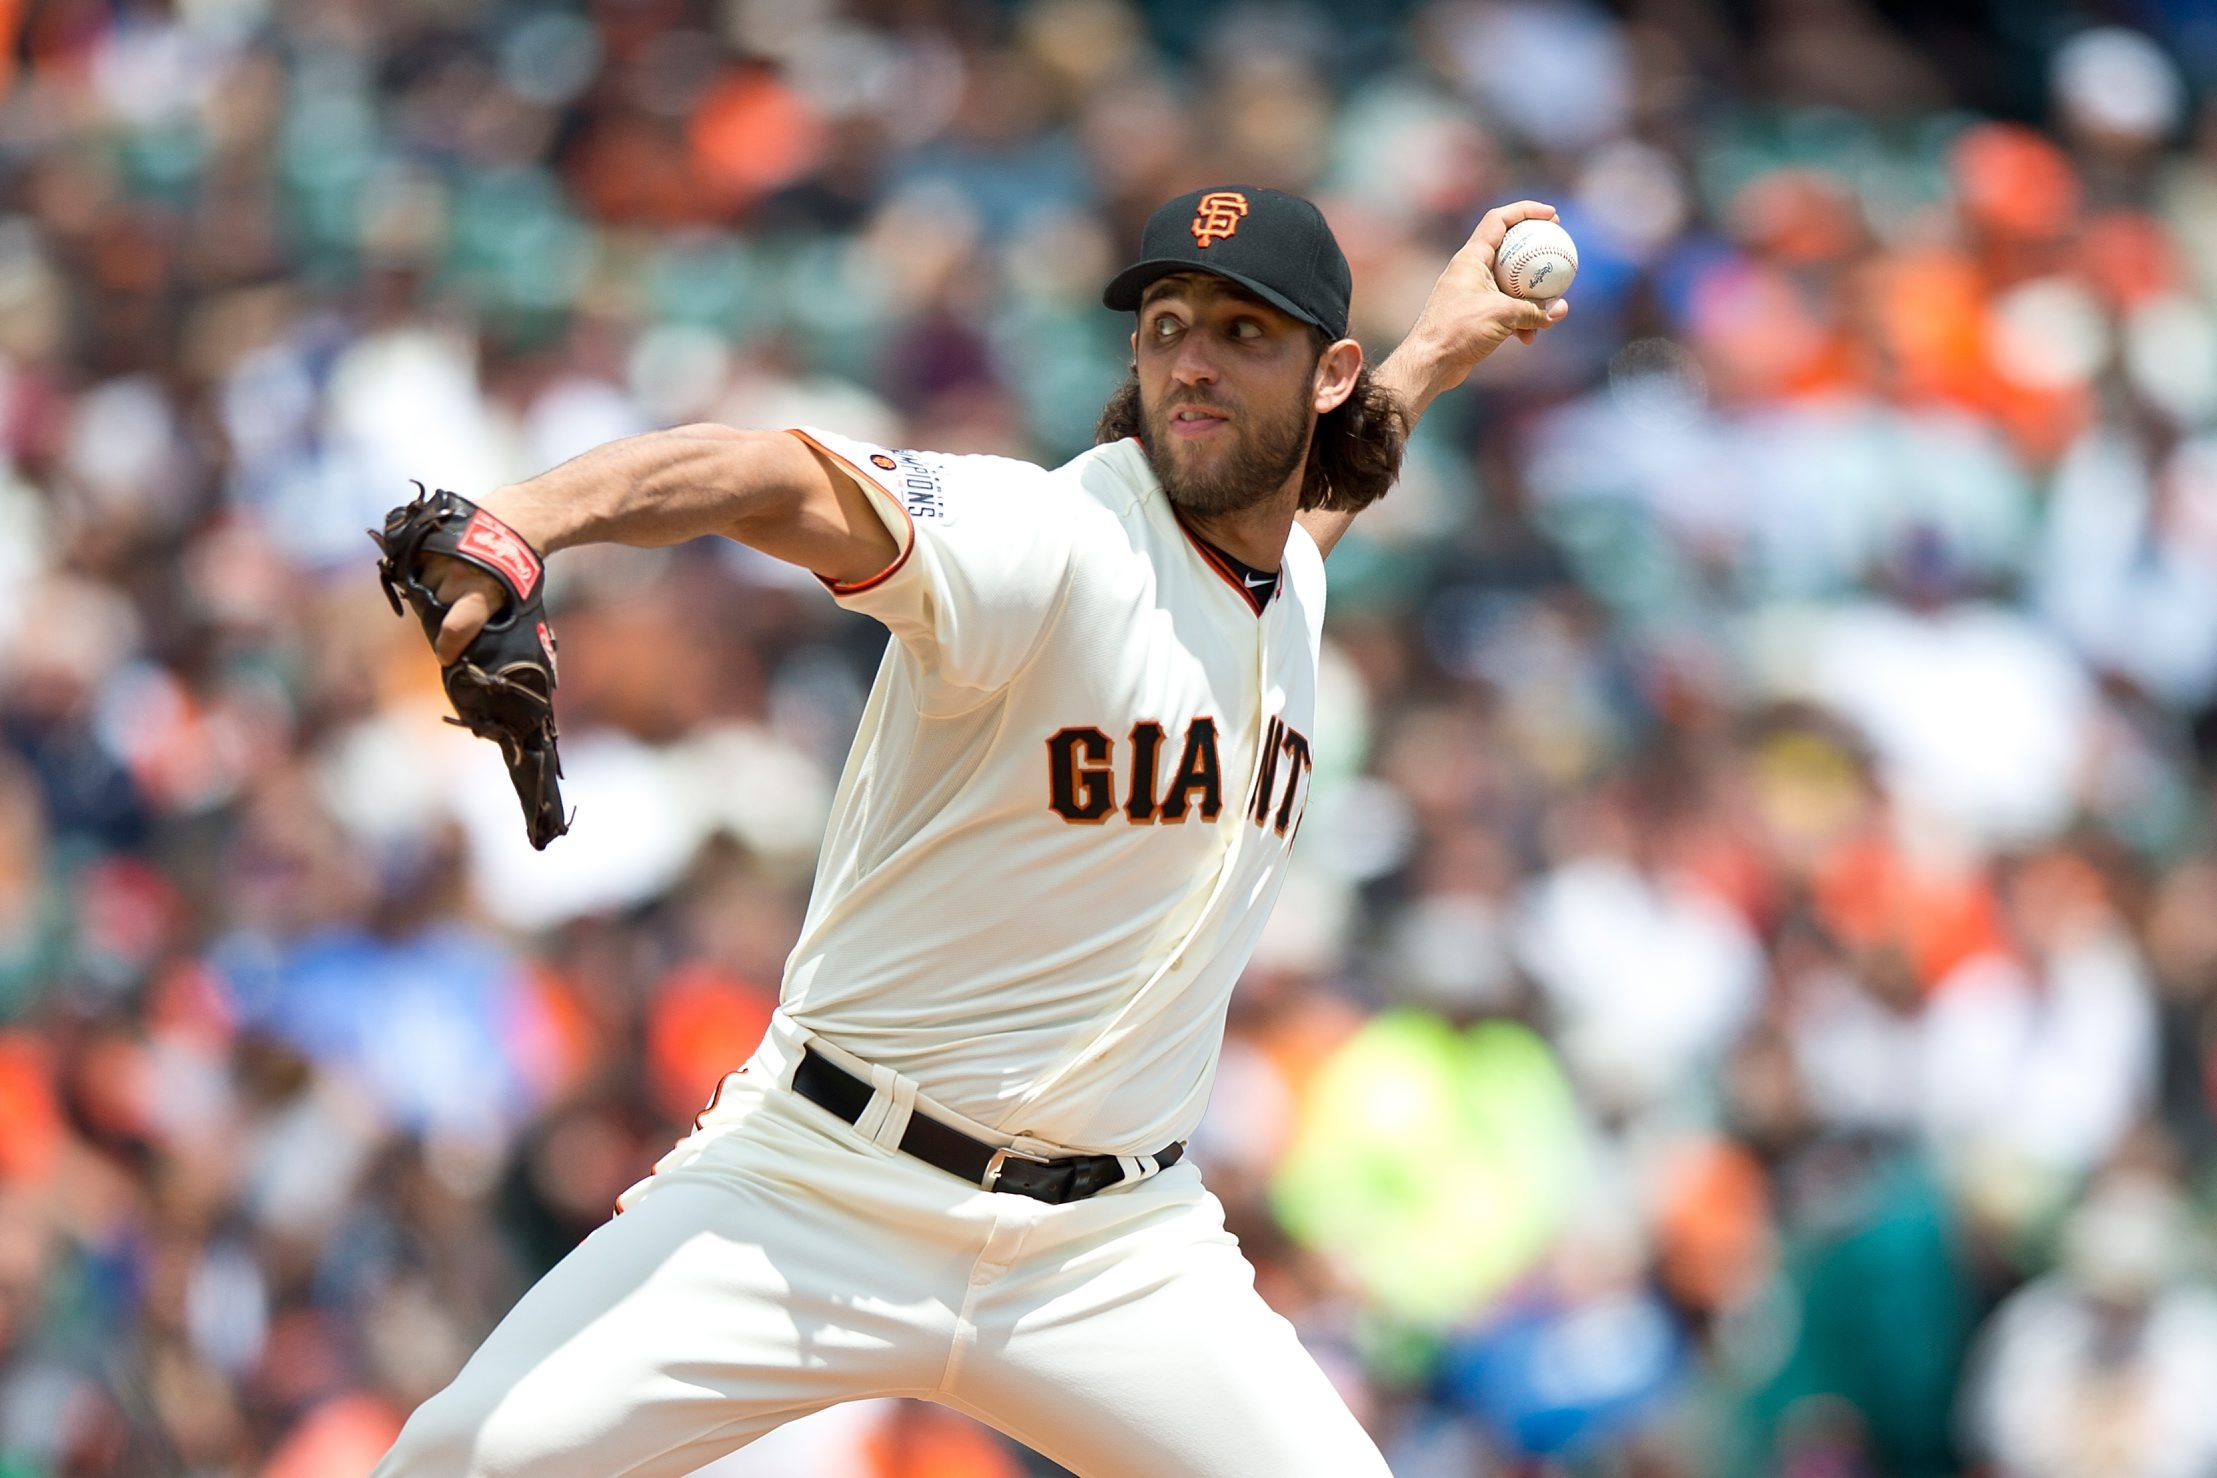 Madison Bumgarner of the Giants has followed his World Series heroics from last year with some excellent pitching for San Francisco this season.